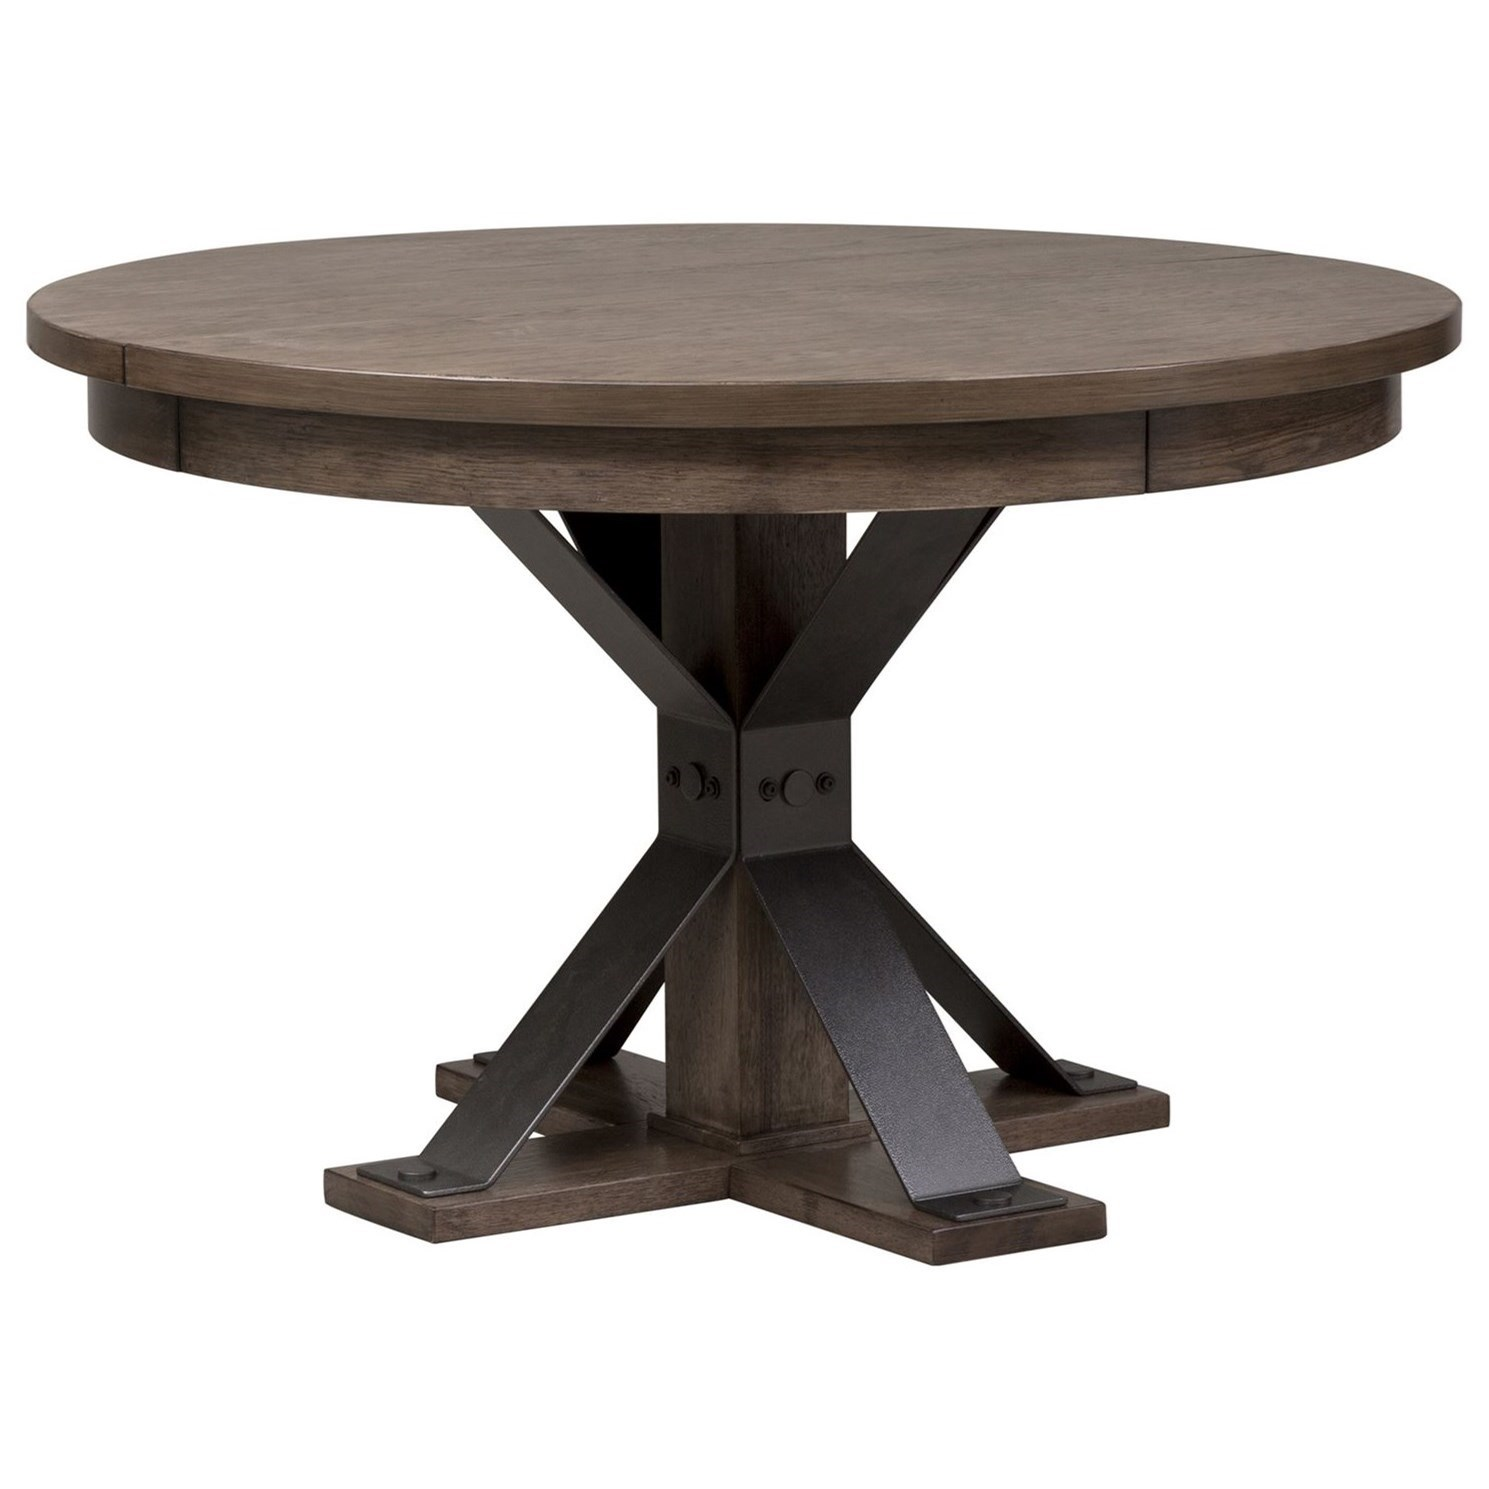 Sonoma Road Oval Pedestal Table by Libby at Walker's Furniture